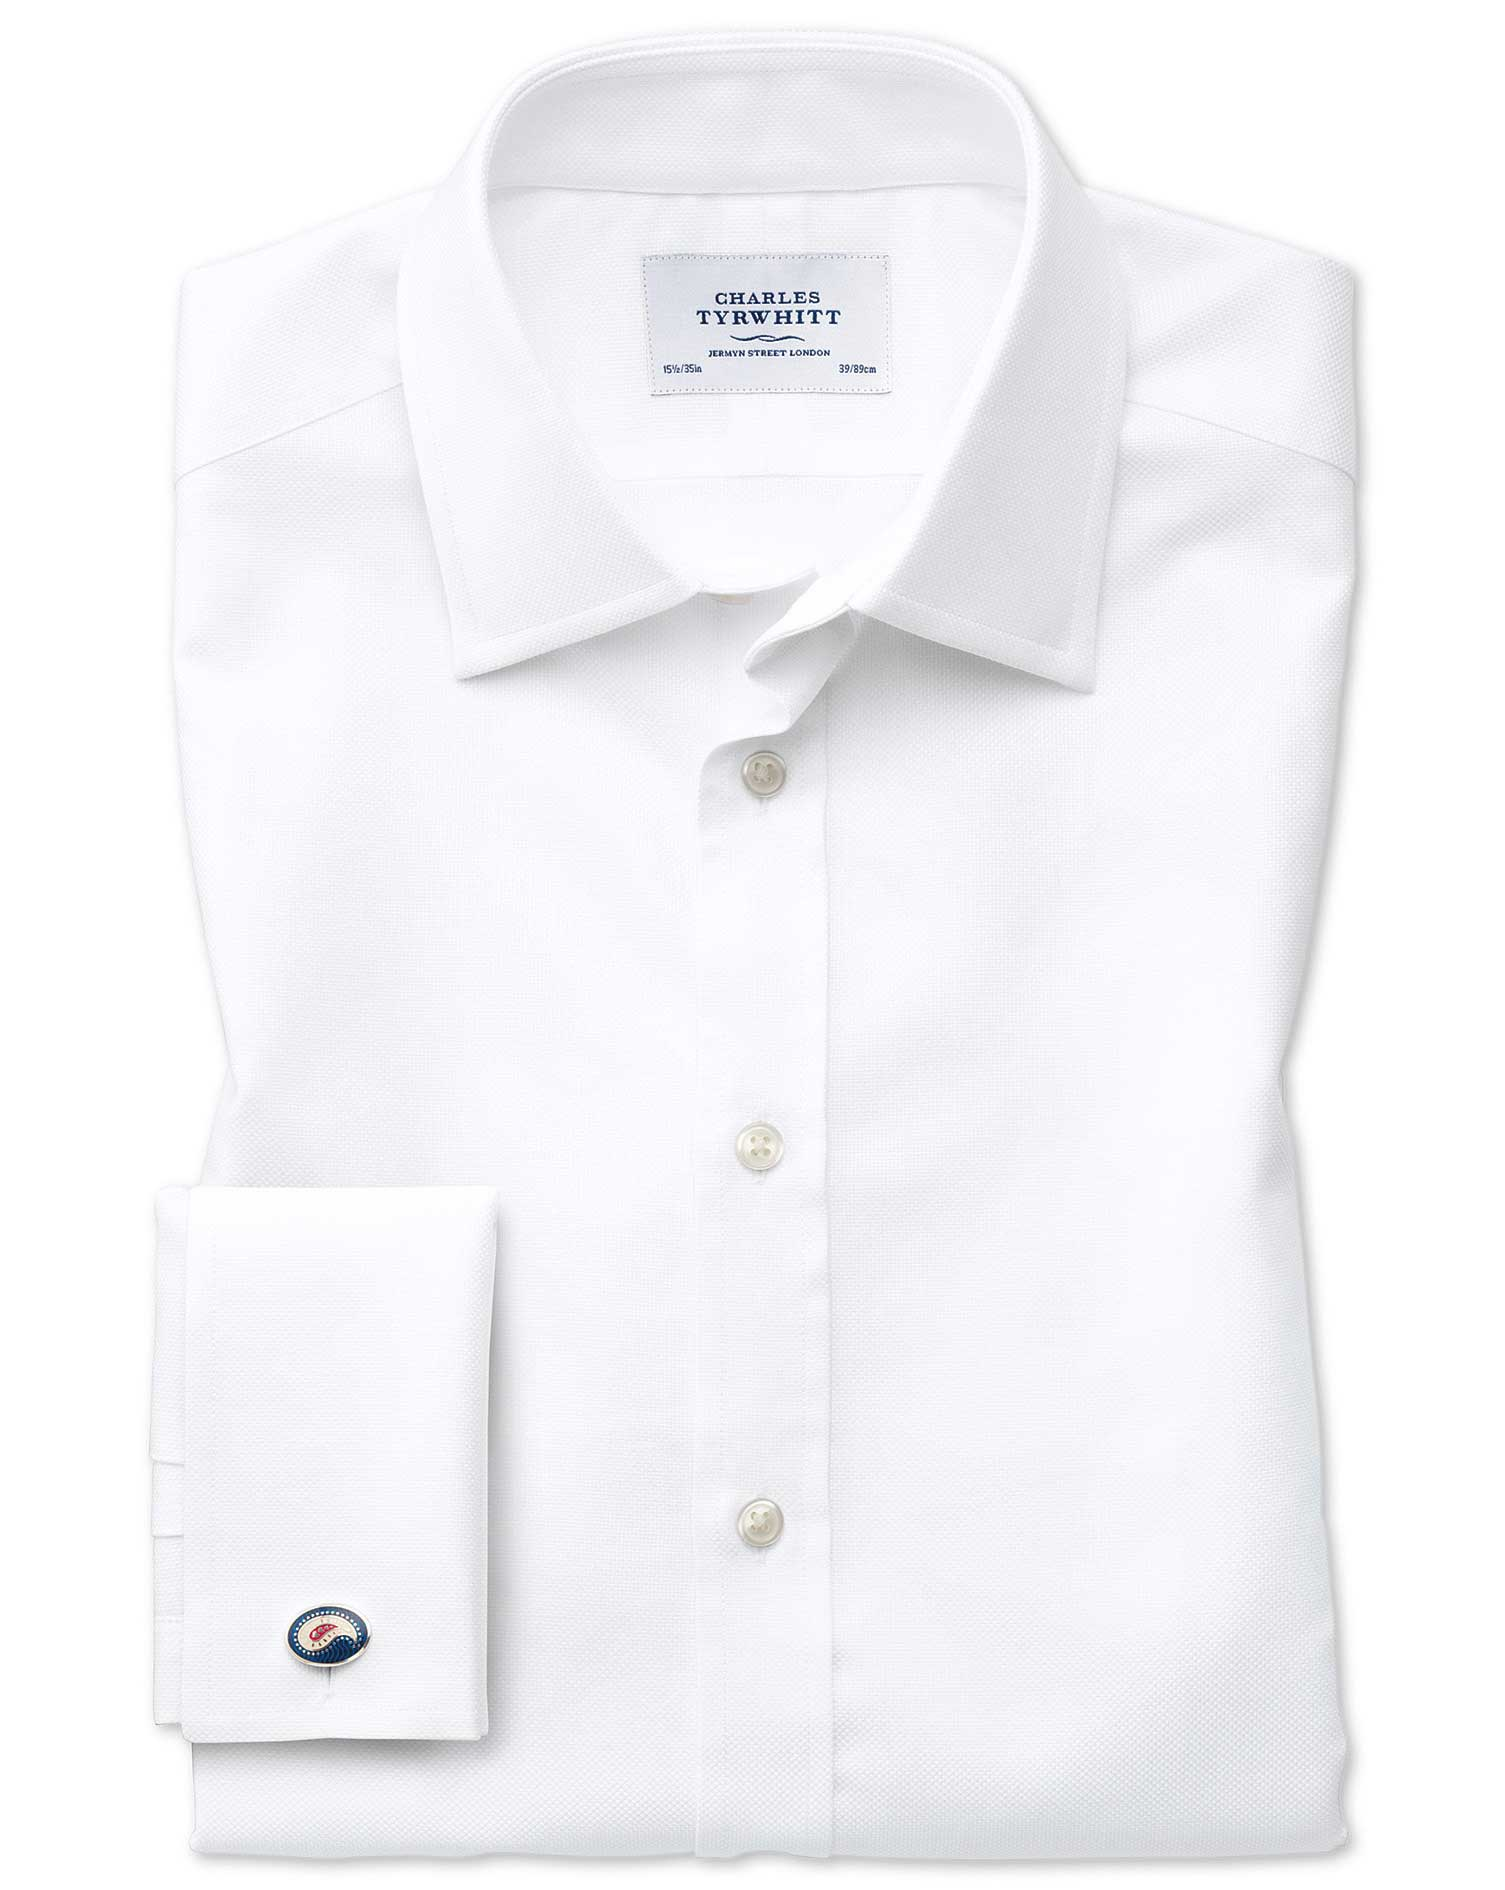 Extra Slim Fit Egyptian Cotton Royal Oxford White Formal Shirt Single Cuff Size 14.5/32 by Charles T